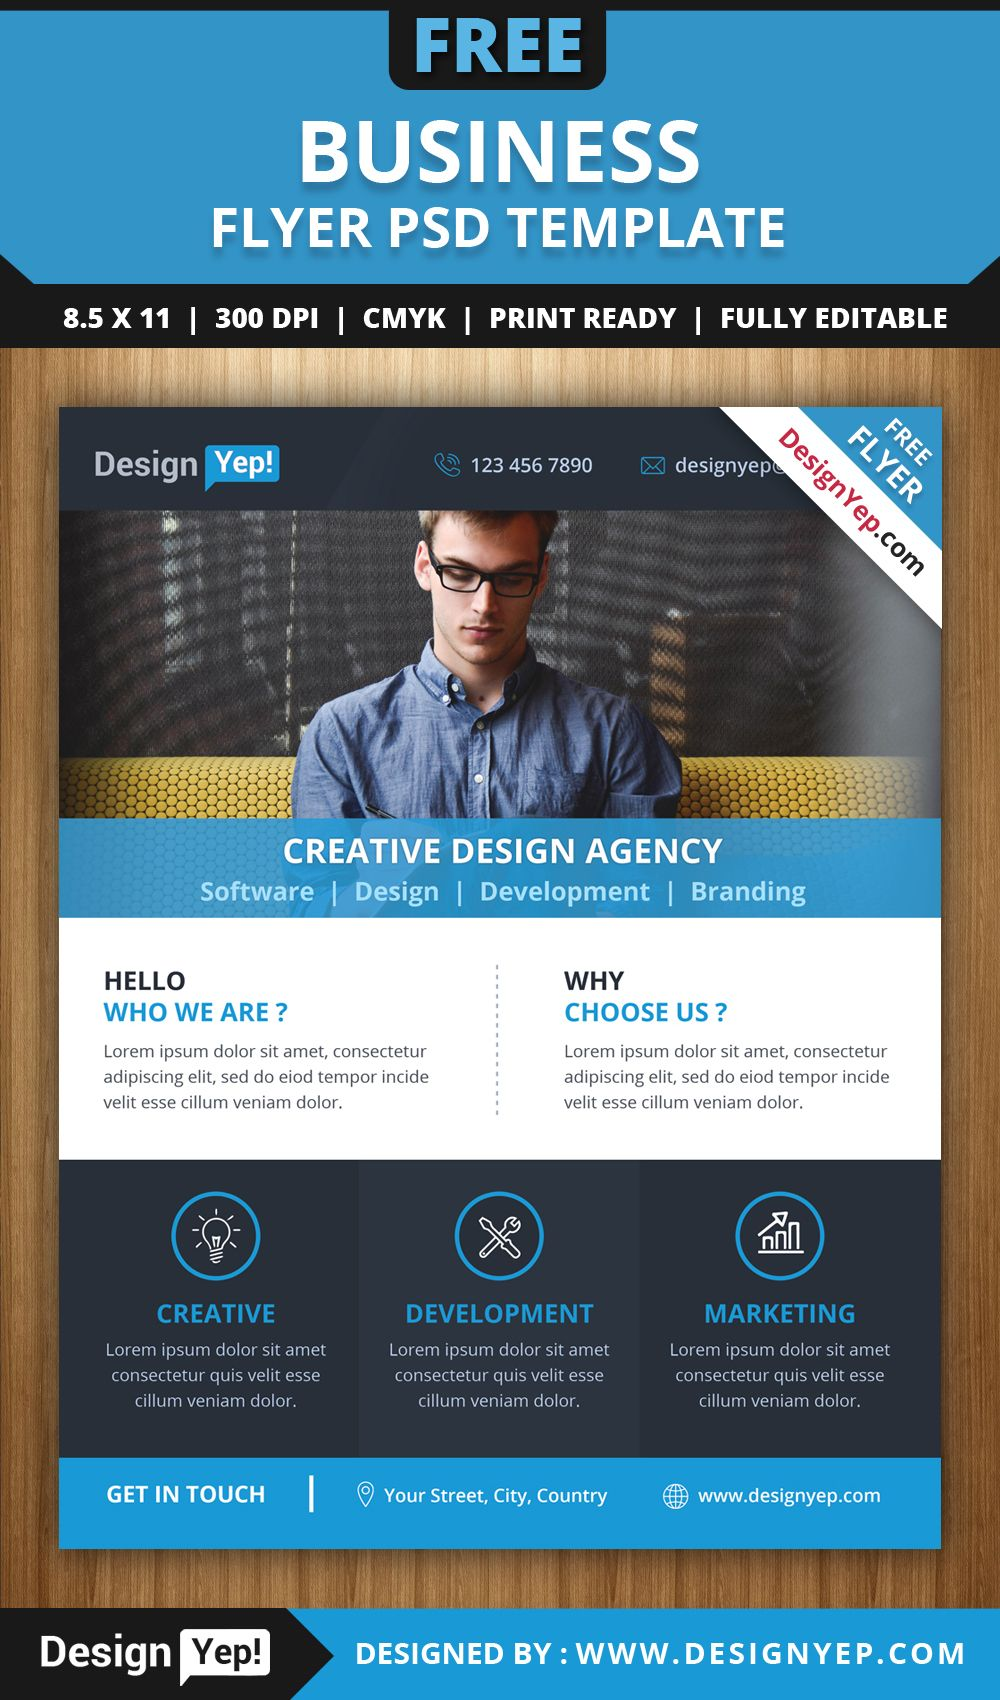 business flyer psd template 6666 designyep flyers business flyer psd template designyep